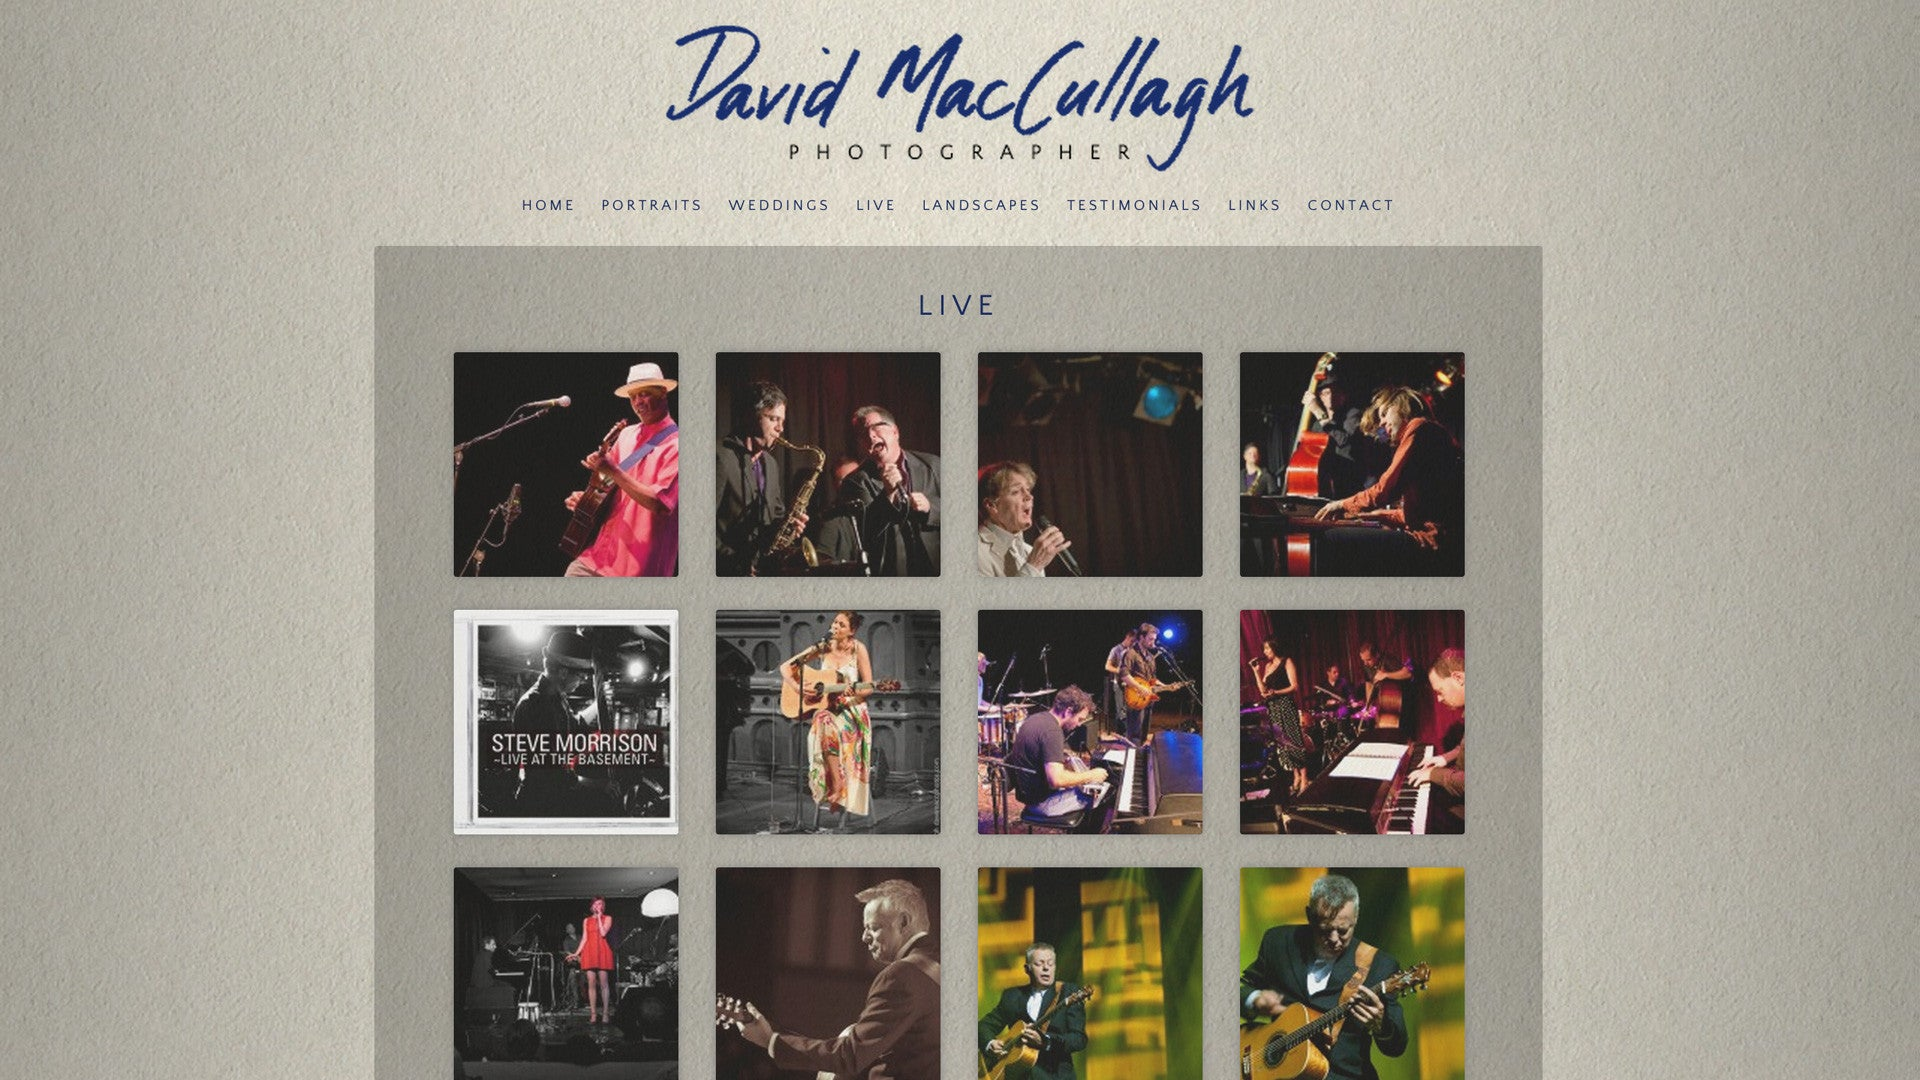 David Maccullagh Photographer